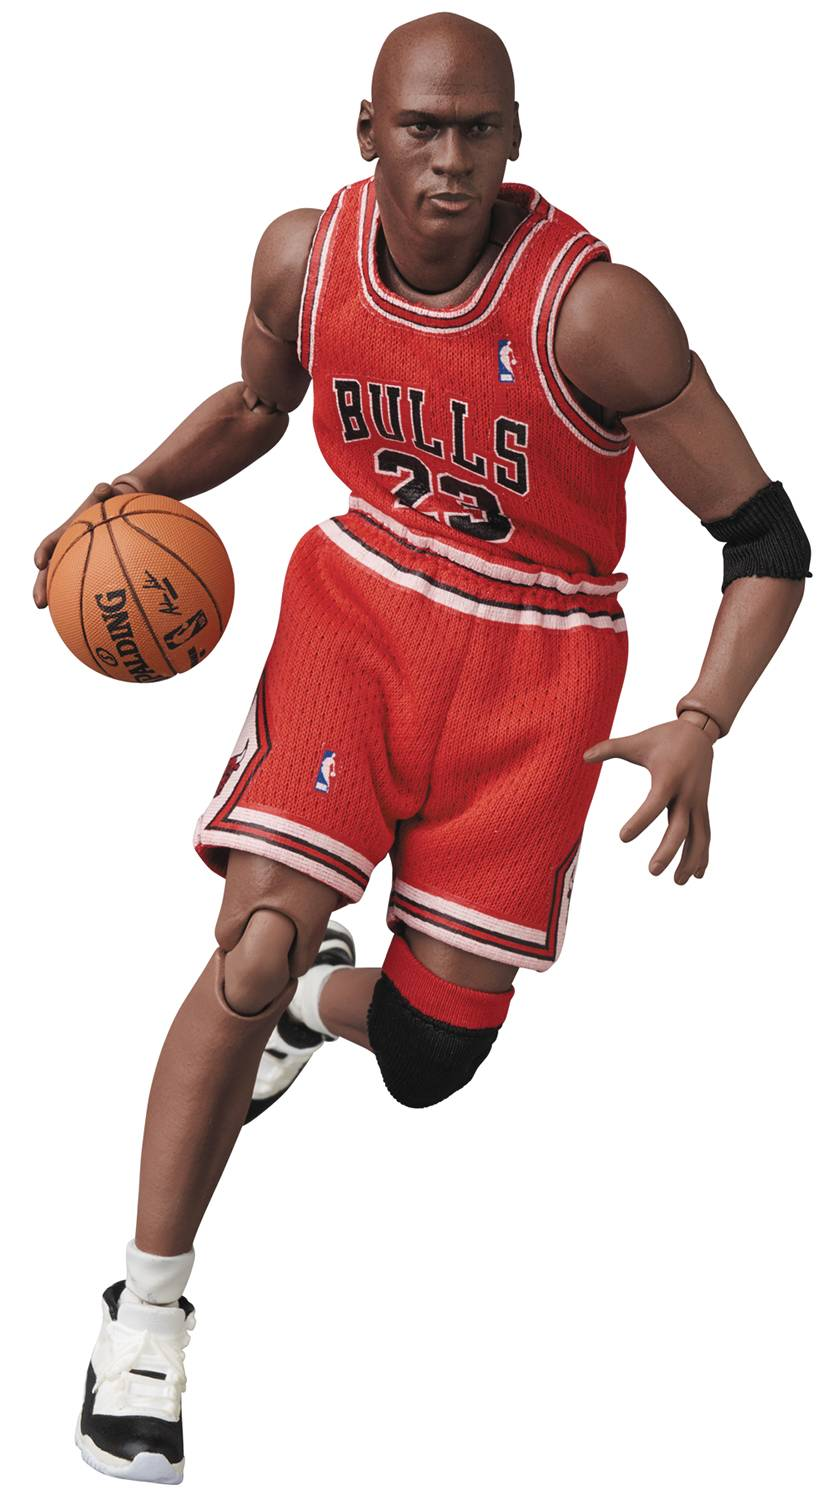 MICHAEL JORDAN CHICAGO BULLS UNIFORM MAFEX AF